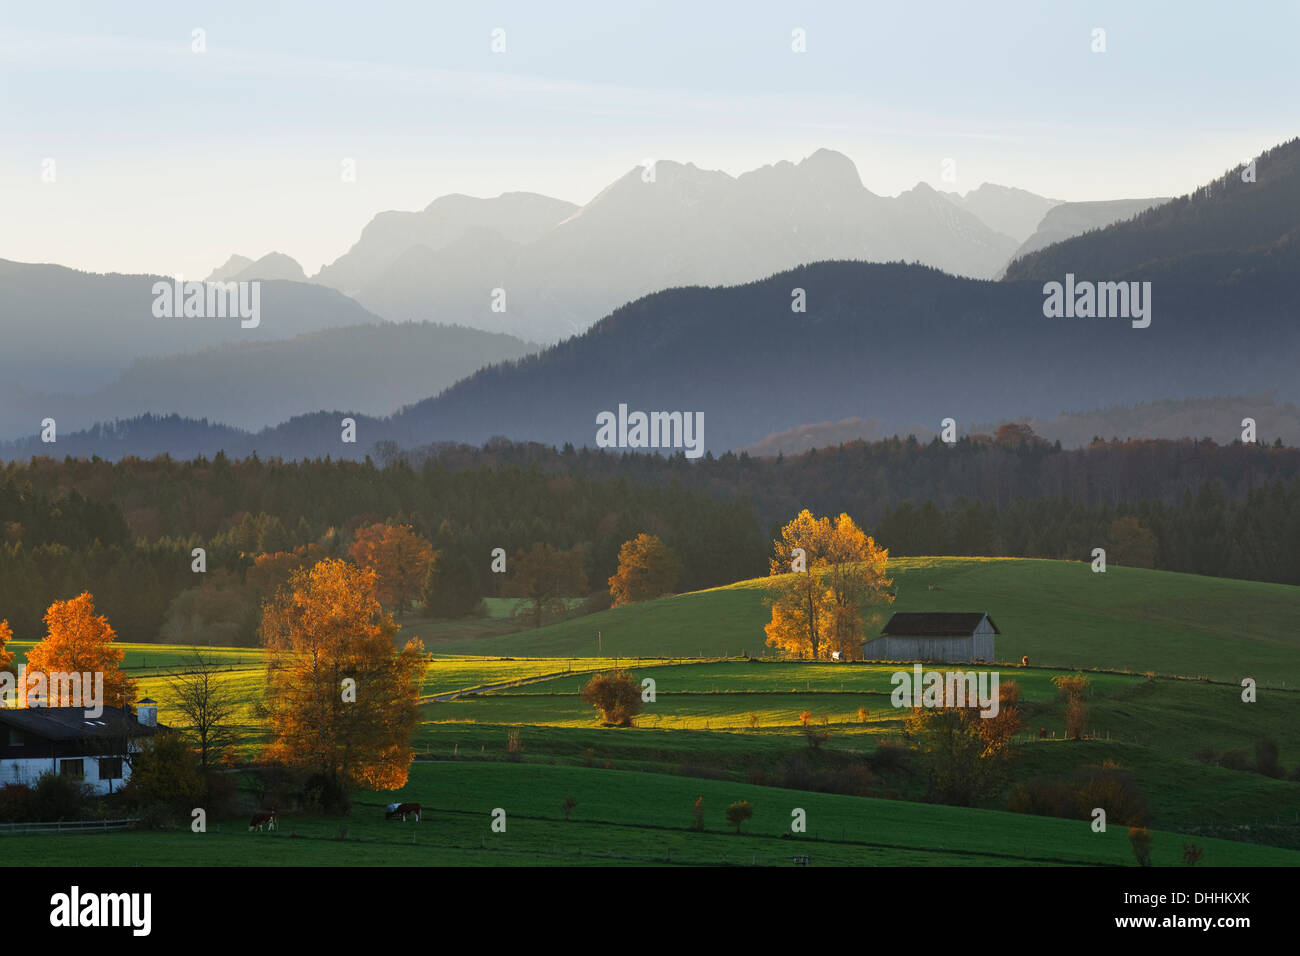 Autumn morning in the foothills of the Alps, view from Mt Aidlinger Hoehe, Aidling, Riegsee, Pfaffenwinkel region, Upper Bavaria - Stock Image